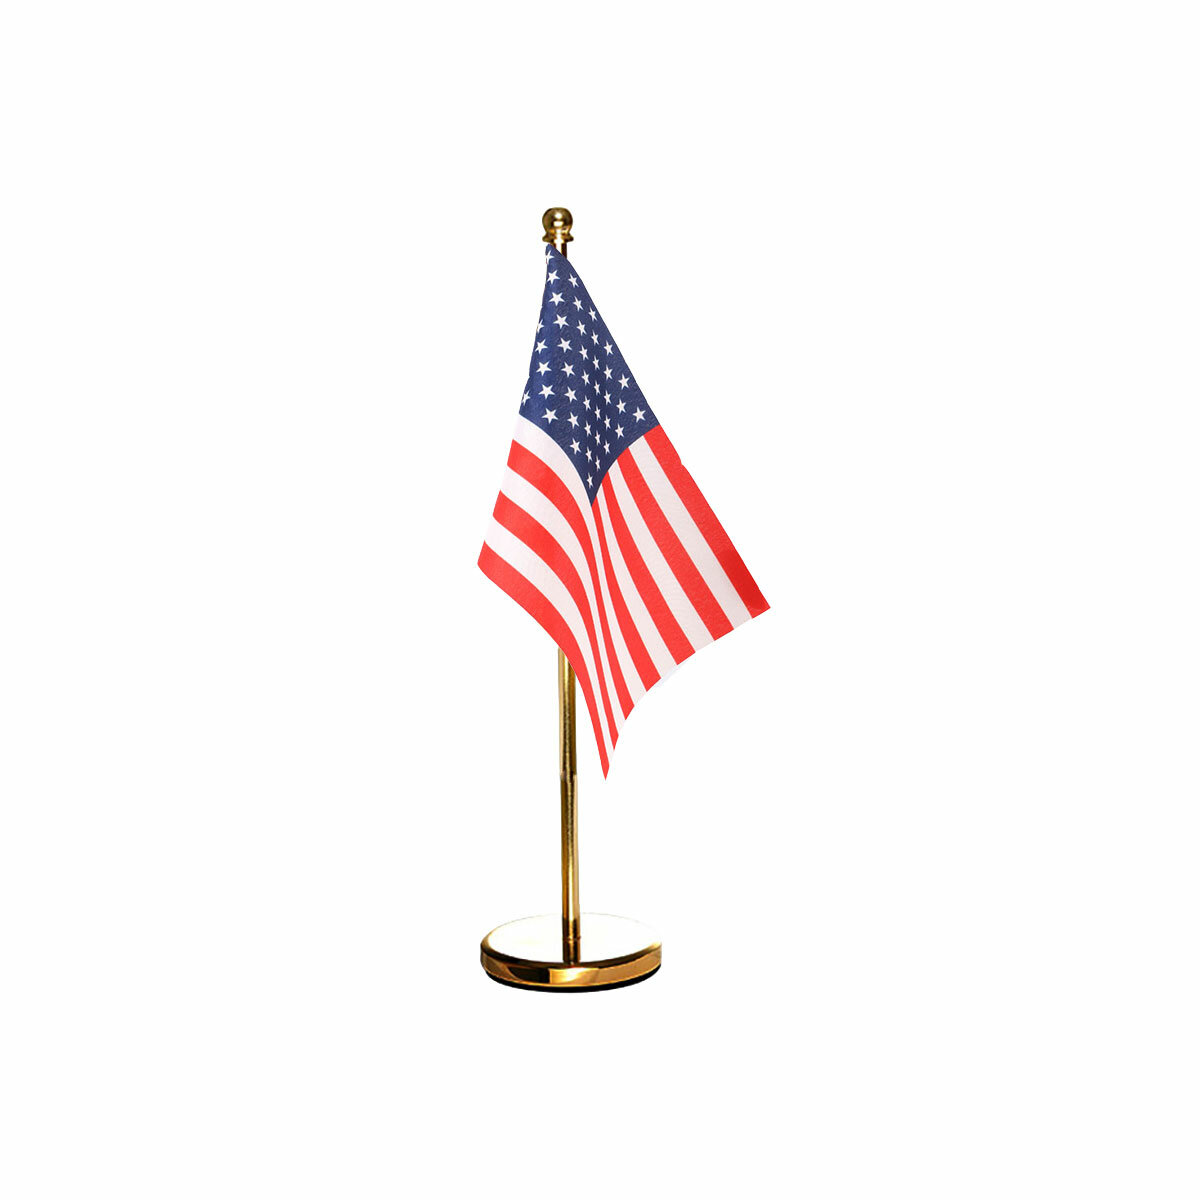 usa table or desk flag with a stainles steel stand / base